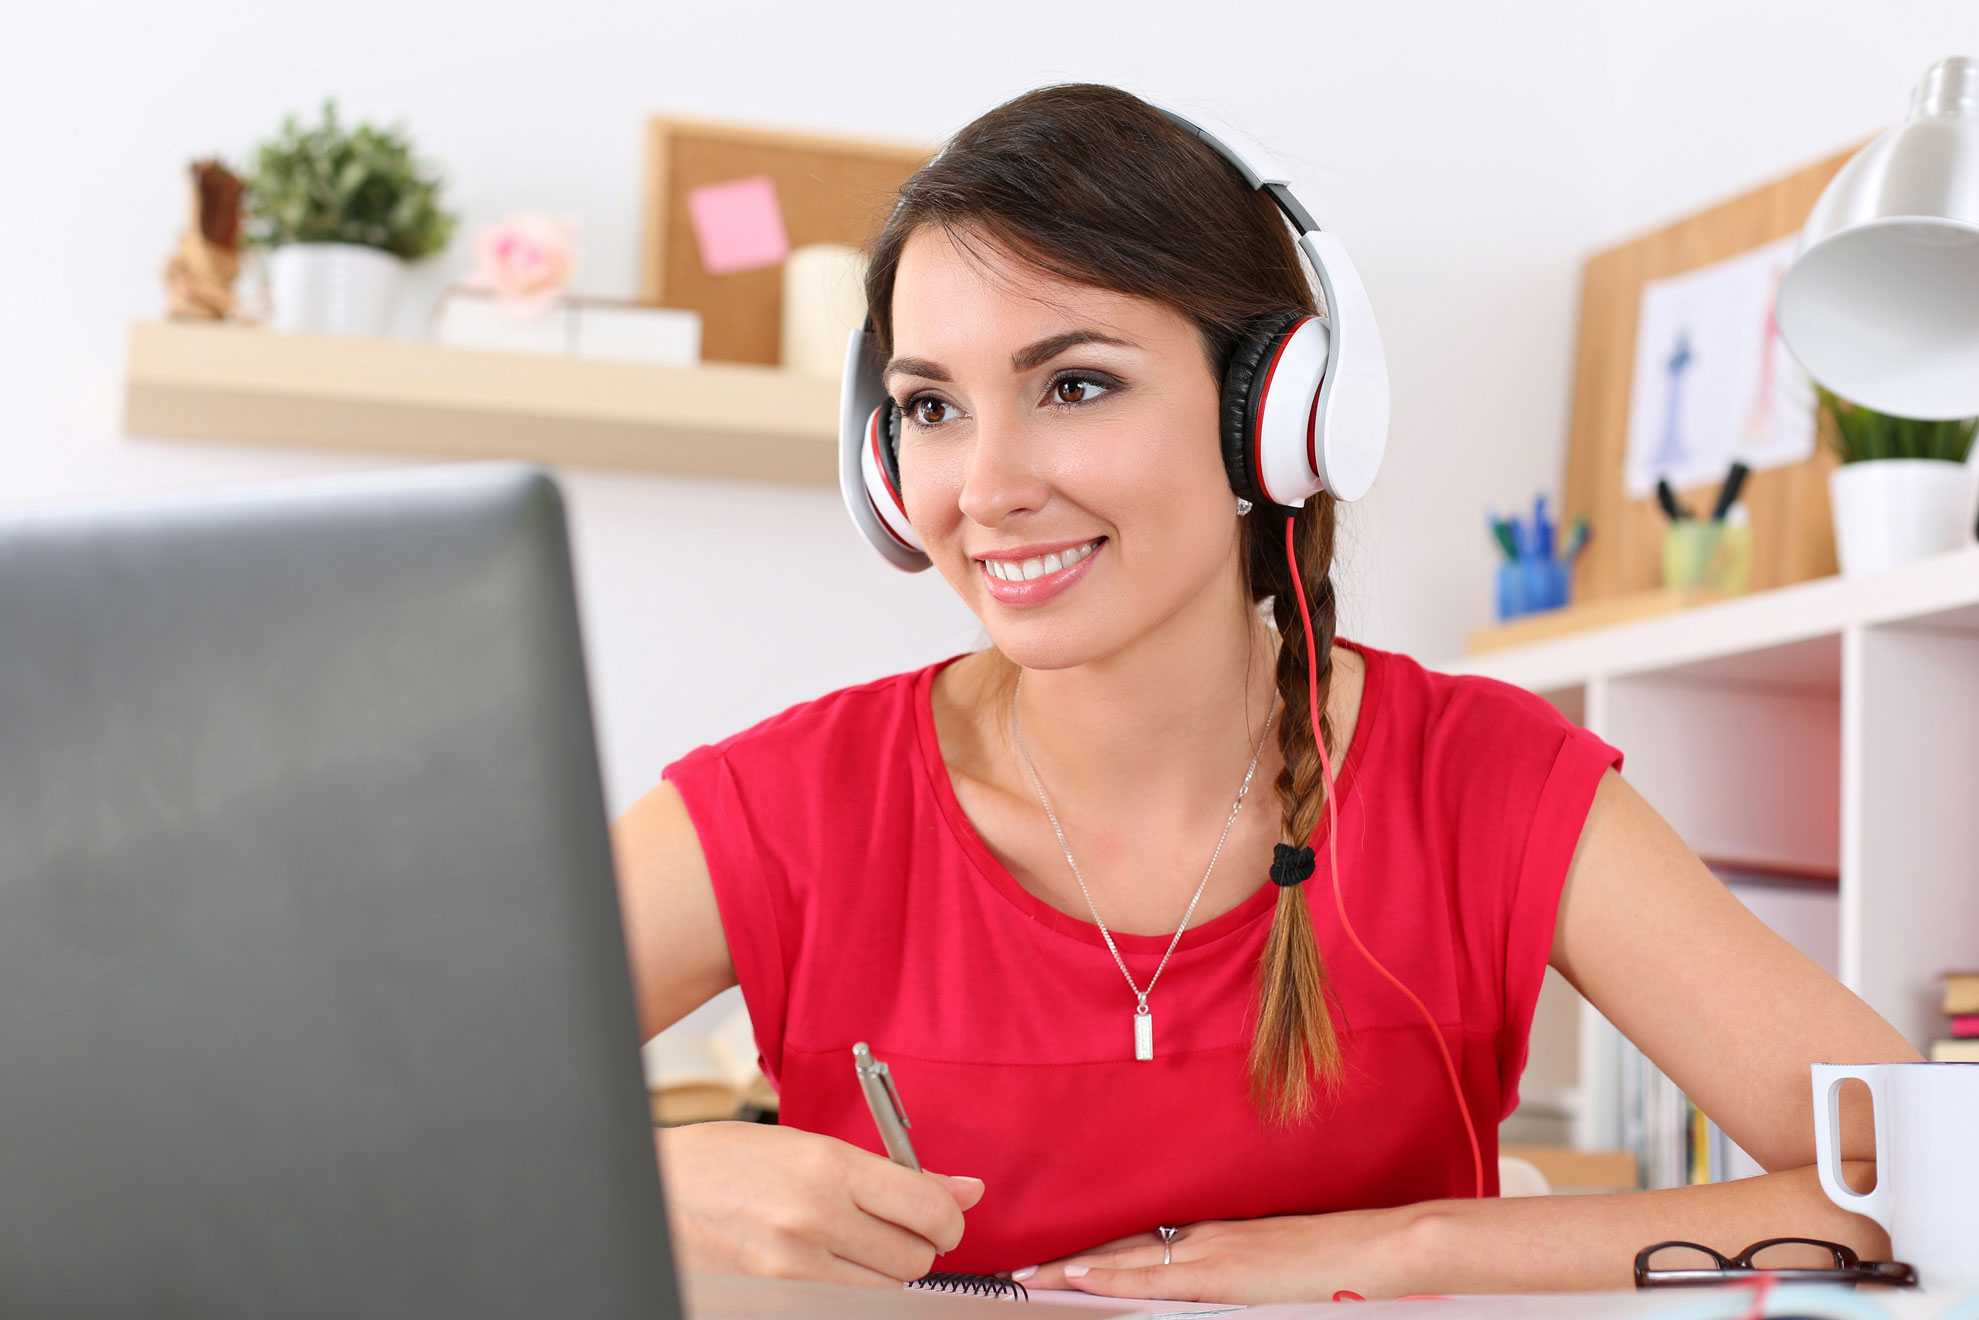 online-trainings-young-woman-headphones-laptop-listening-smiling-home-office